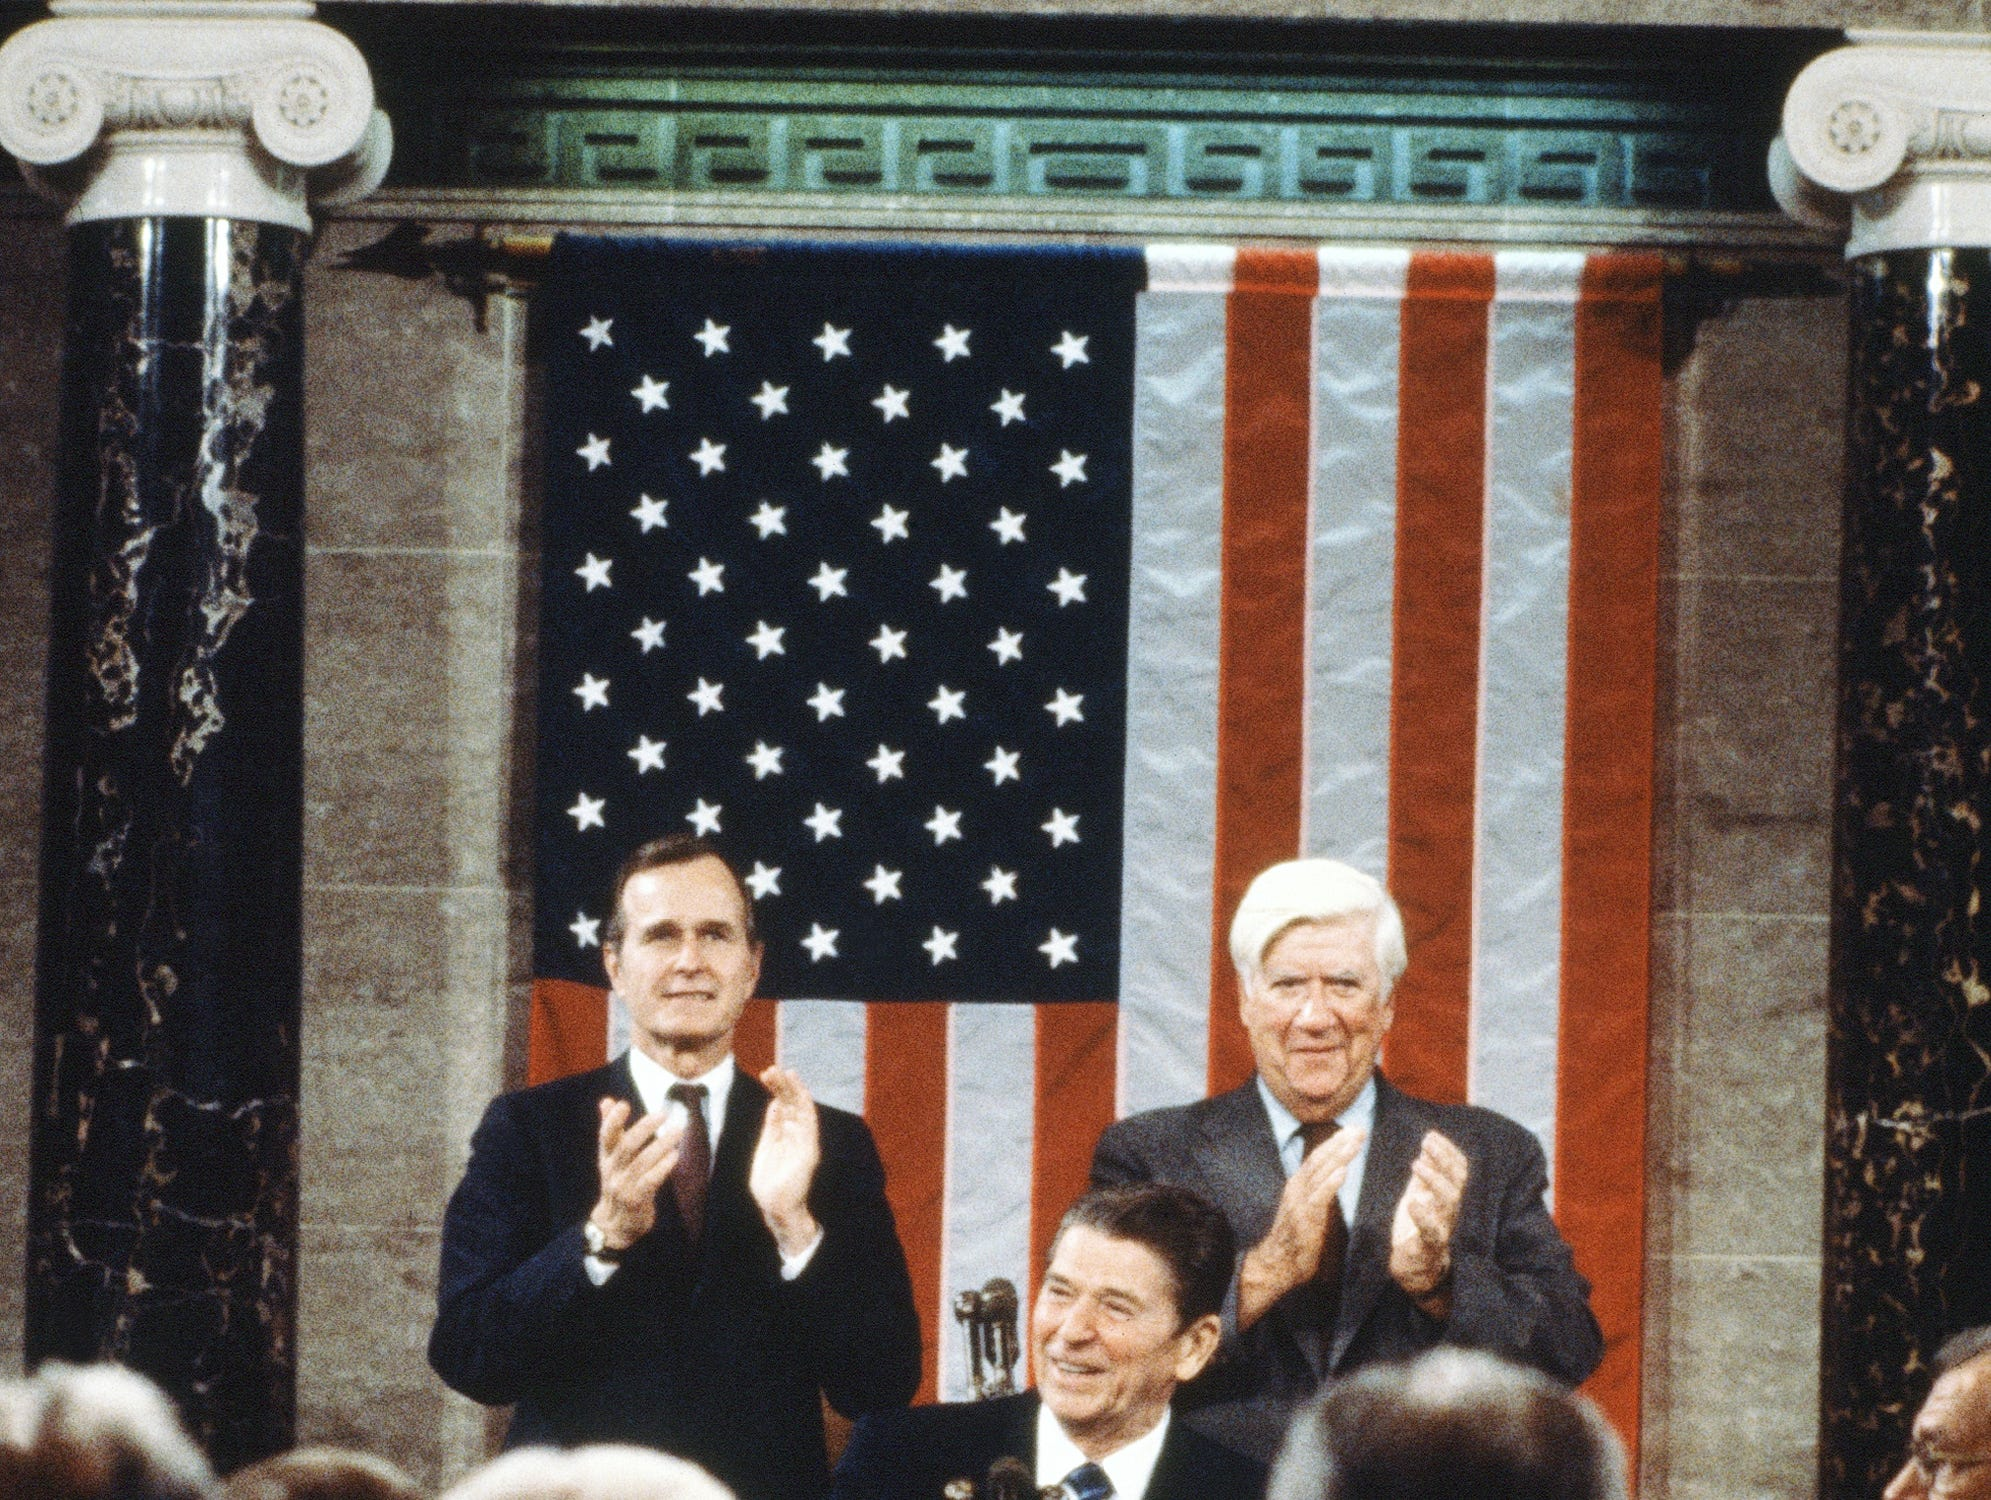 President Ronald Reagan addresses Congress on economic program with George H.W. Bush and Tip O'Neil on April 28, 1981. This was his first public appearance after being shot. (AP Photo)